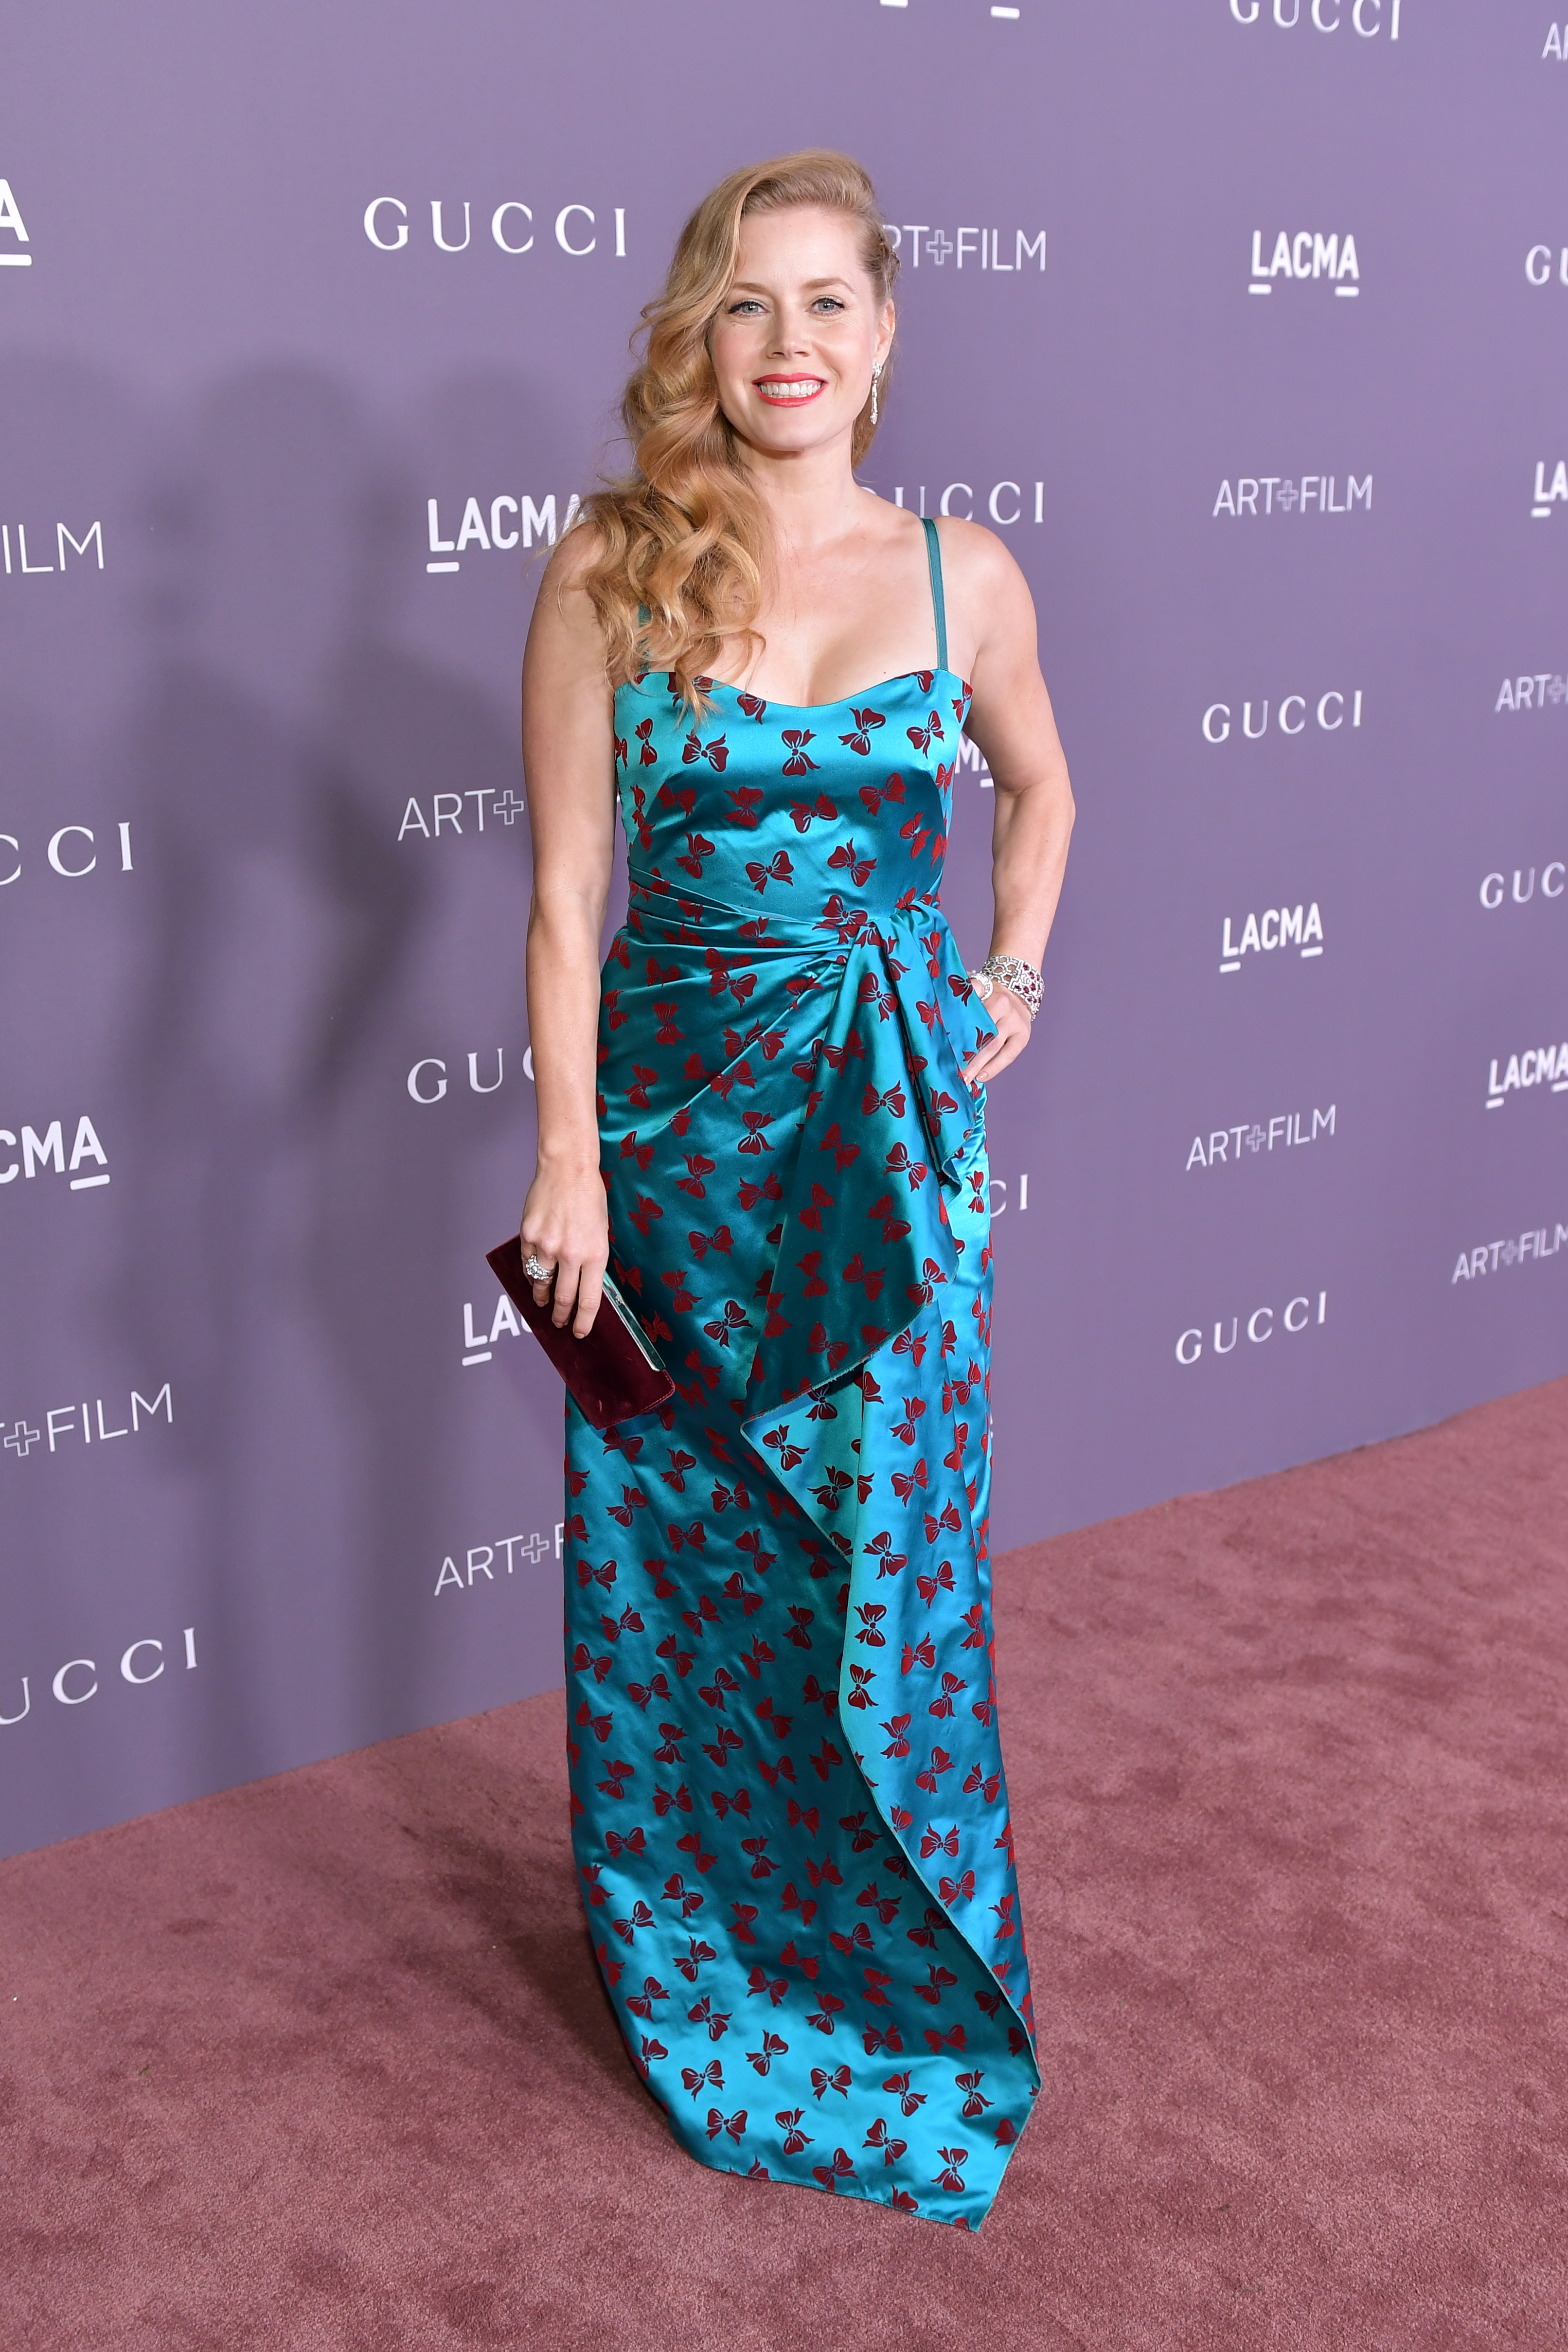 LOS ANGELES, CA - NOVEMBER 04: Actor Amy Adams, wearing Gucci, attends the 2017 LACMA Art + Film Gala Honoring Mark Bradford and George Lucas presented by Gucci at LACMA on November 4, 2017 in Los Angeles, California. (Photo by Neilson Barnard/Getty Images for LACMA)